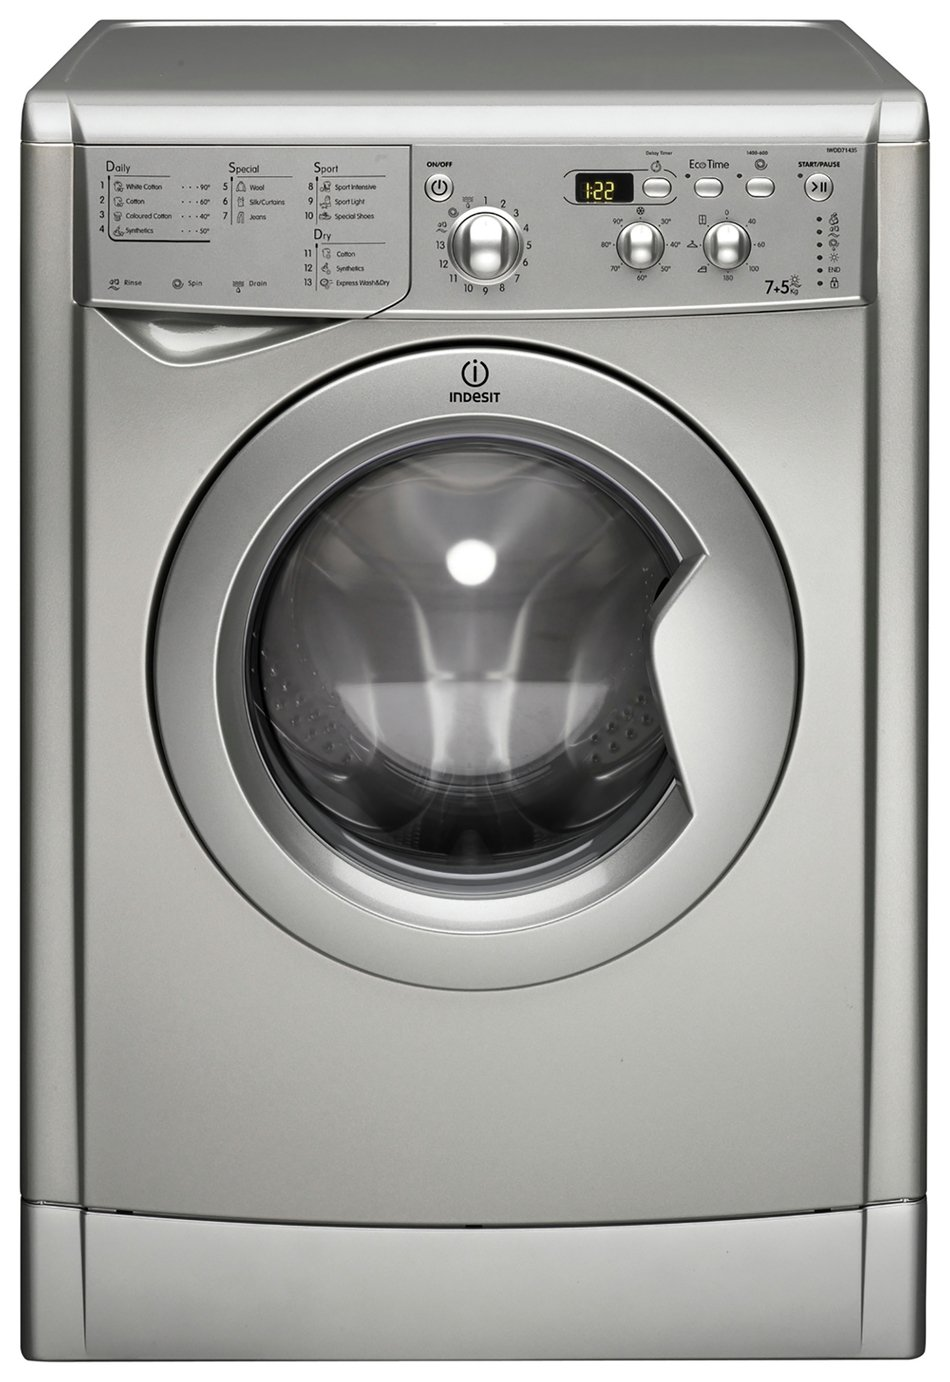 Indesit IWDD7143 S 7KG / 5KG 1400 Spin Washer Dryer - Silver from Indesit